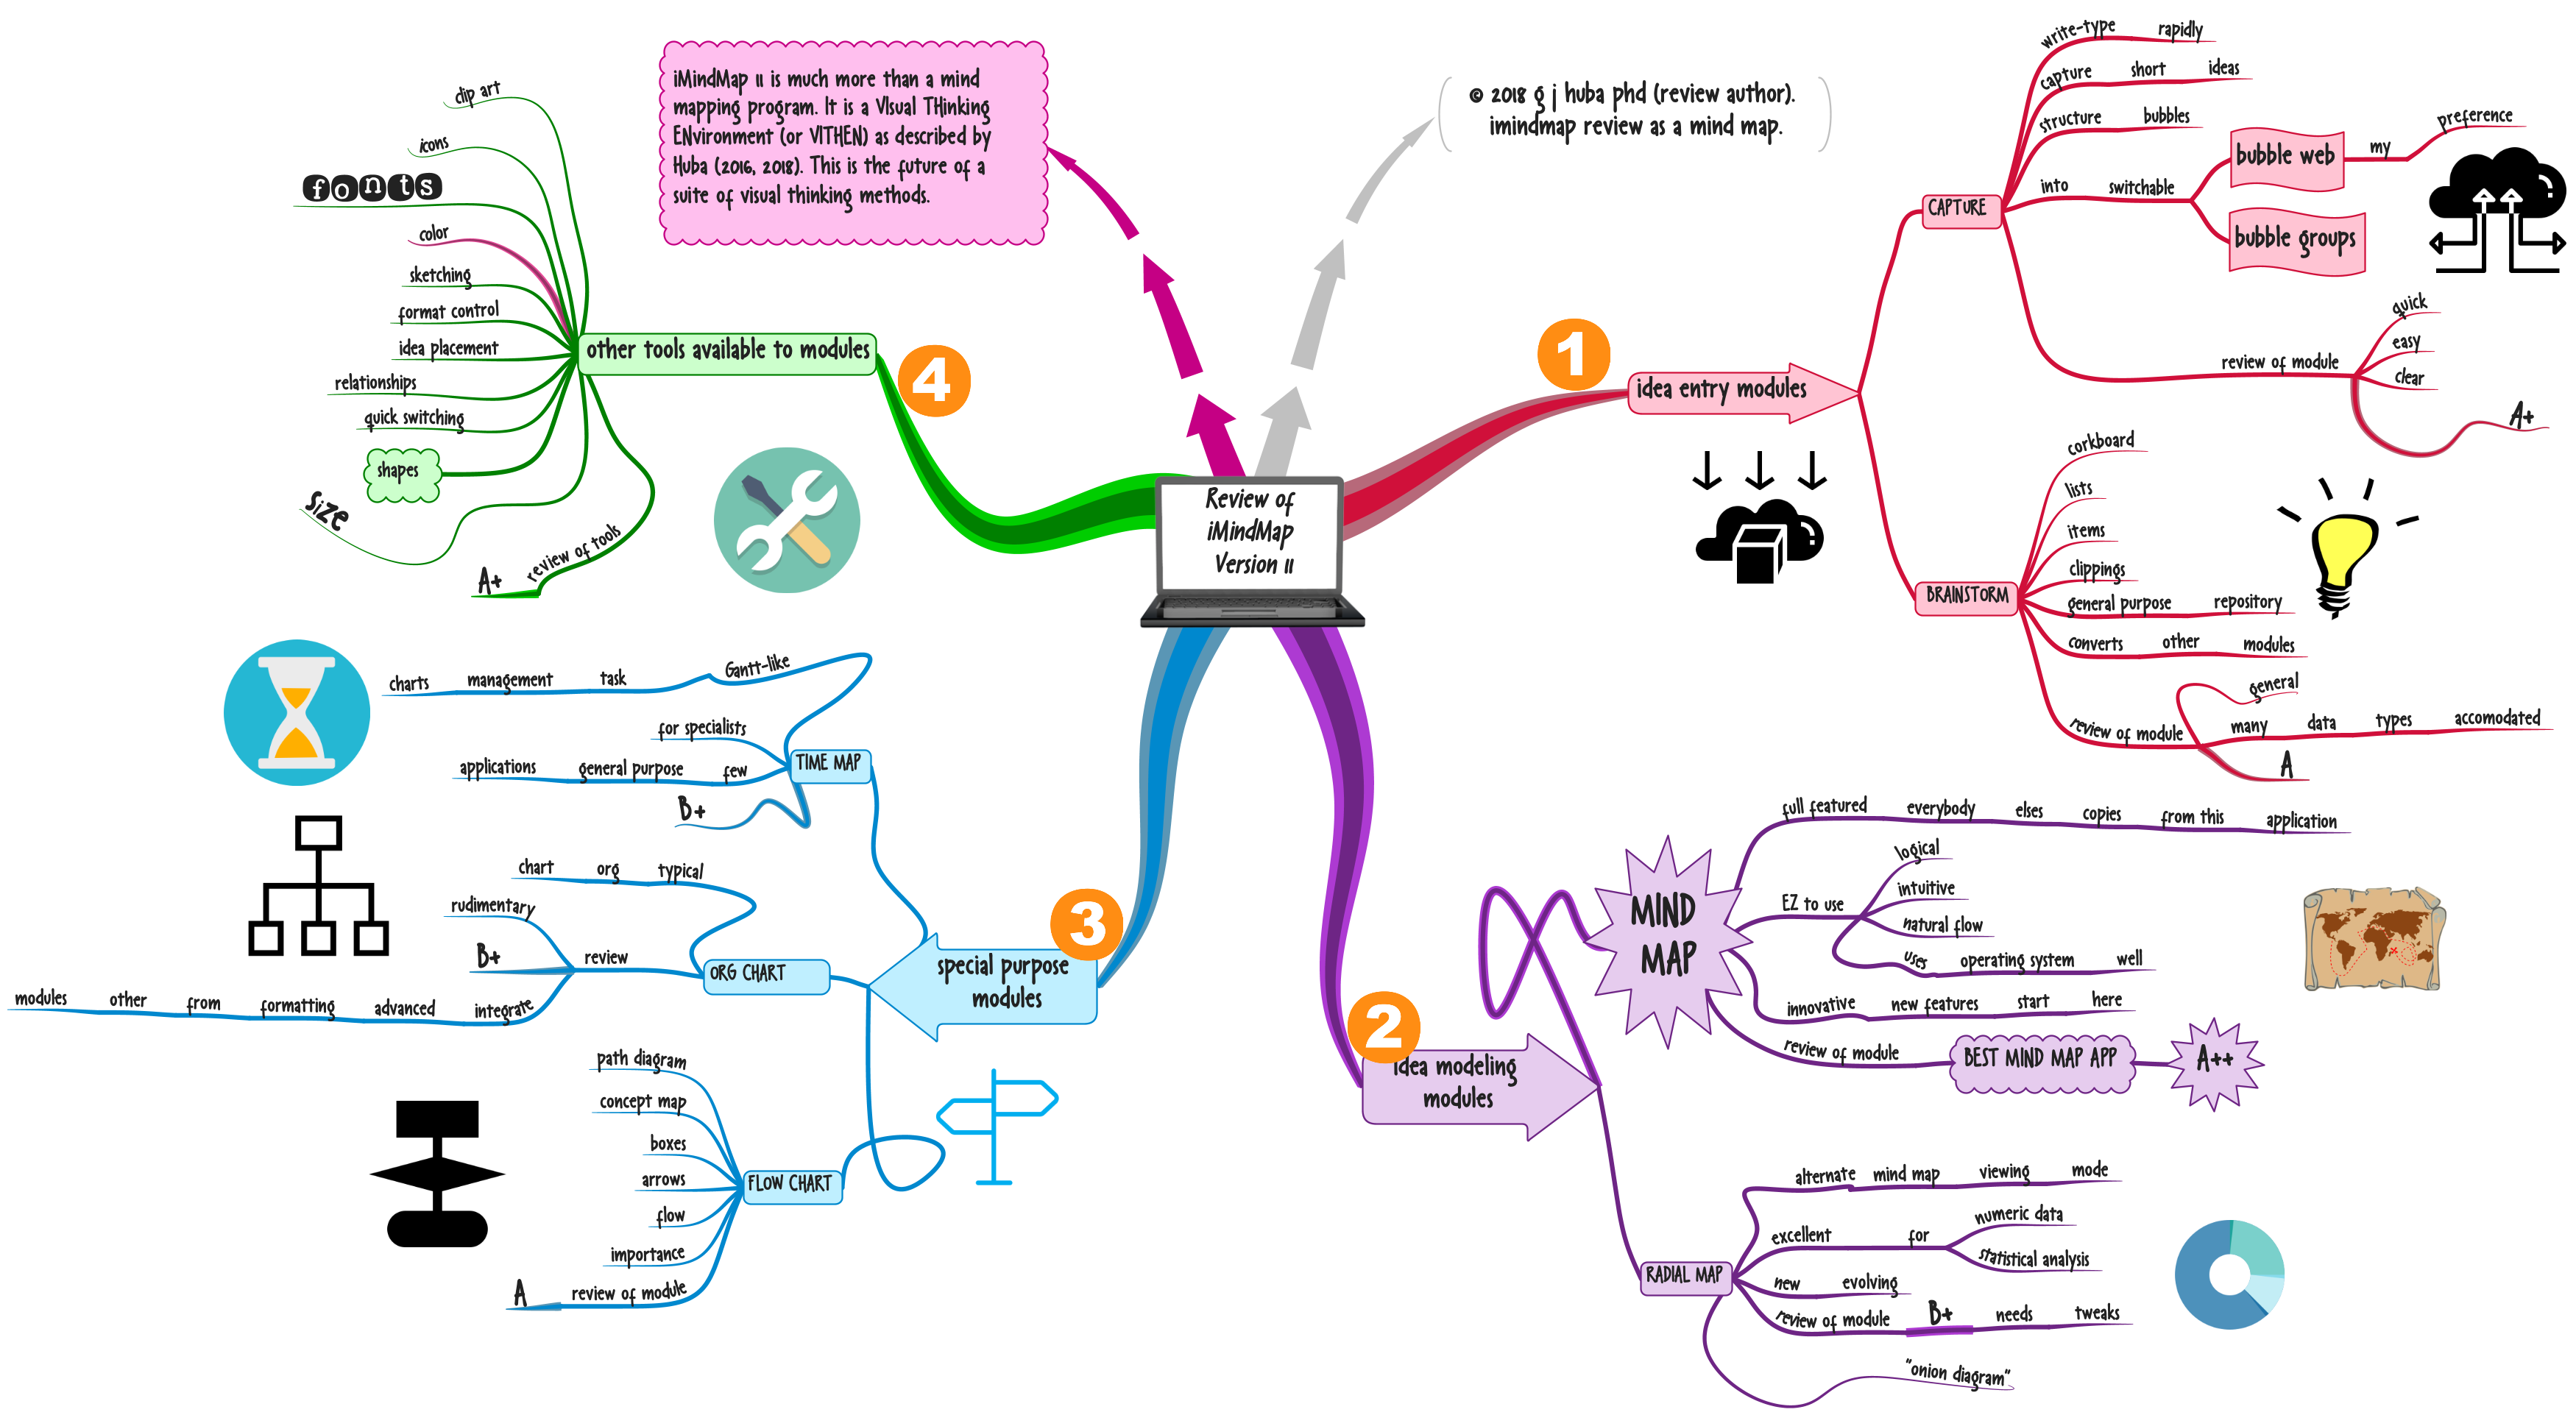 Review of iMindMap 11, the Best Visual Thinking Environment ... on mind map elements, mind map me, mind animation, mind map design, mind business, mind map exercise, mind maps for books, mind map template blank, mind map example, mind map creation, mind games, mind map powerpoint template, mind map software, mind health, mind exploration, mind travel, mind mapper, mind energy, mind tool, mind programming,